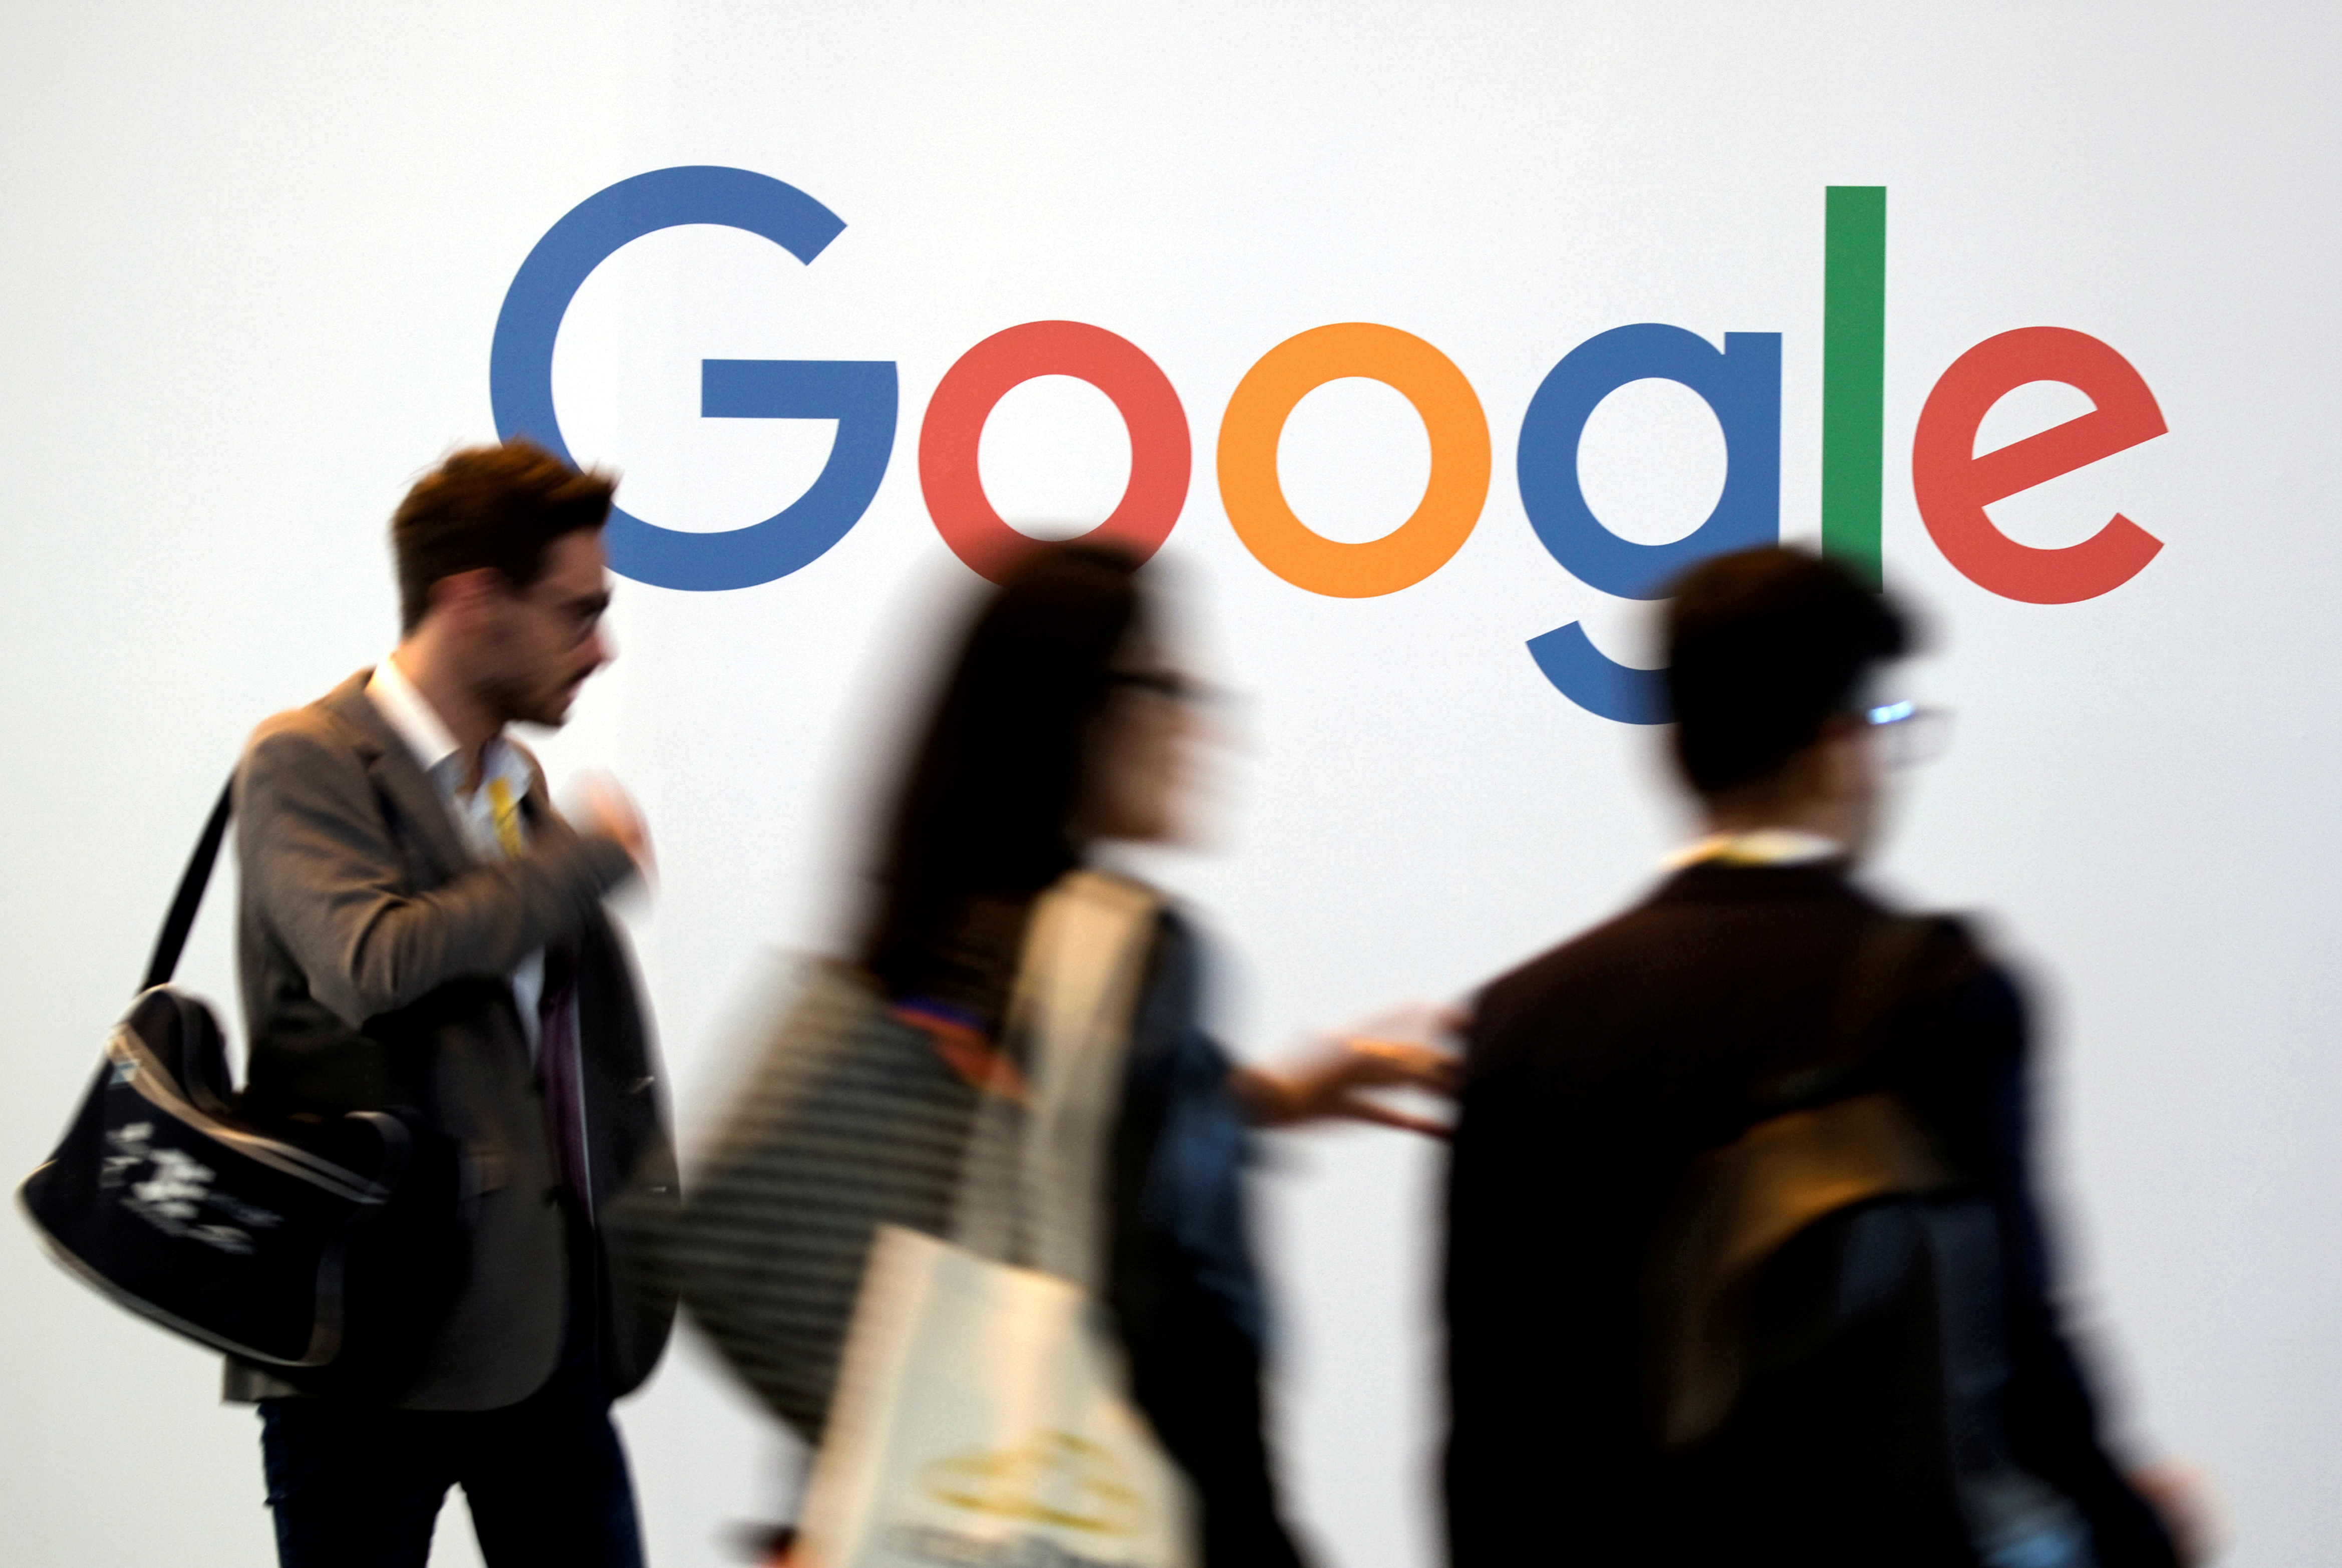 Google to make changes in global advertising practices bowing to